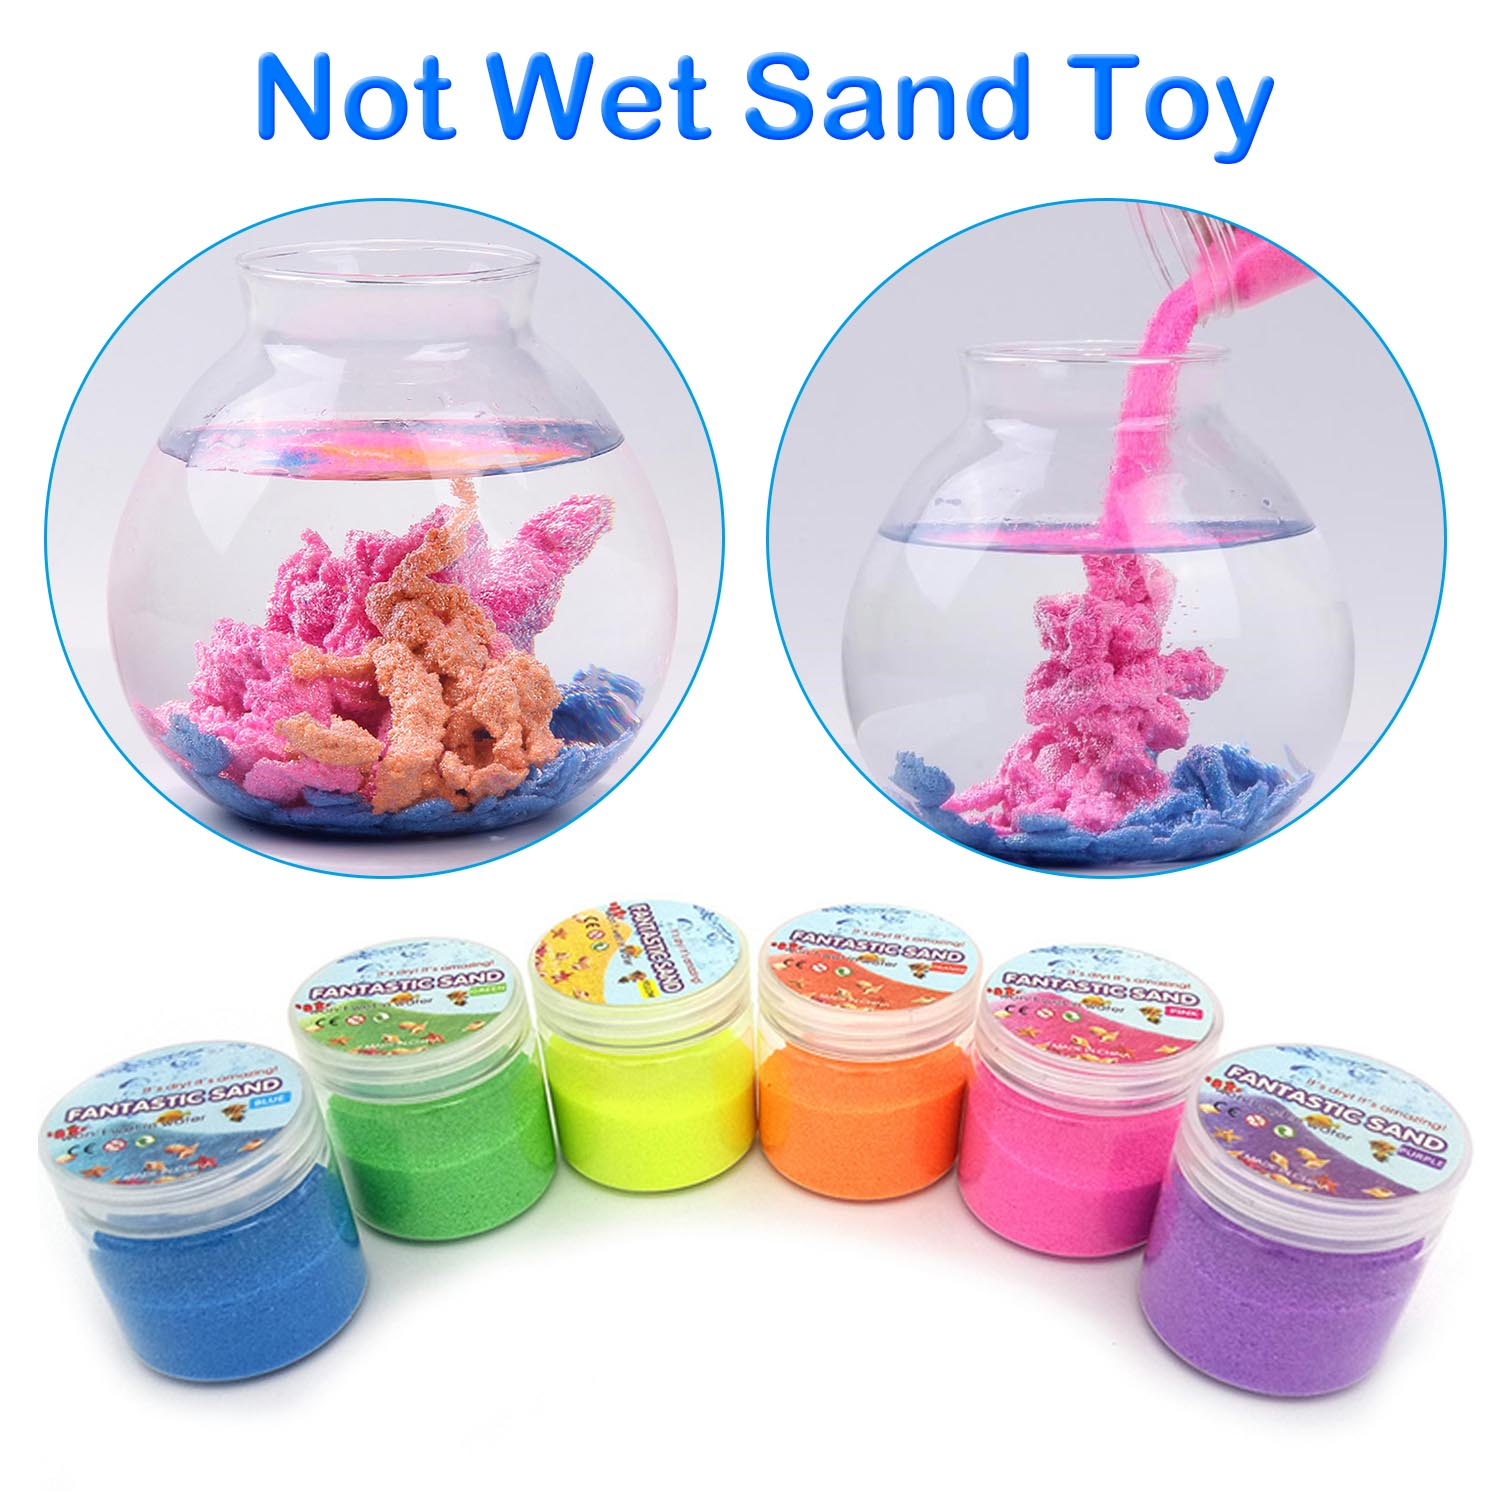 Kids DIY Magic Not Wet Sand Funny Amazing Non-toxic Hydrophobic Space Sand Slime Toy Molding Shaping Squeezing Castles Sand Toy